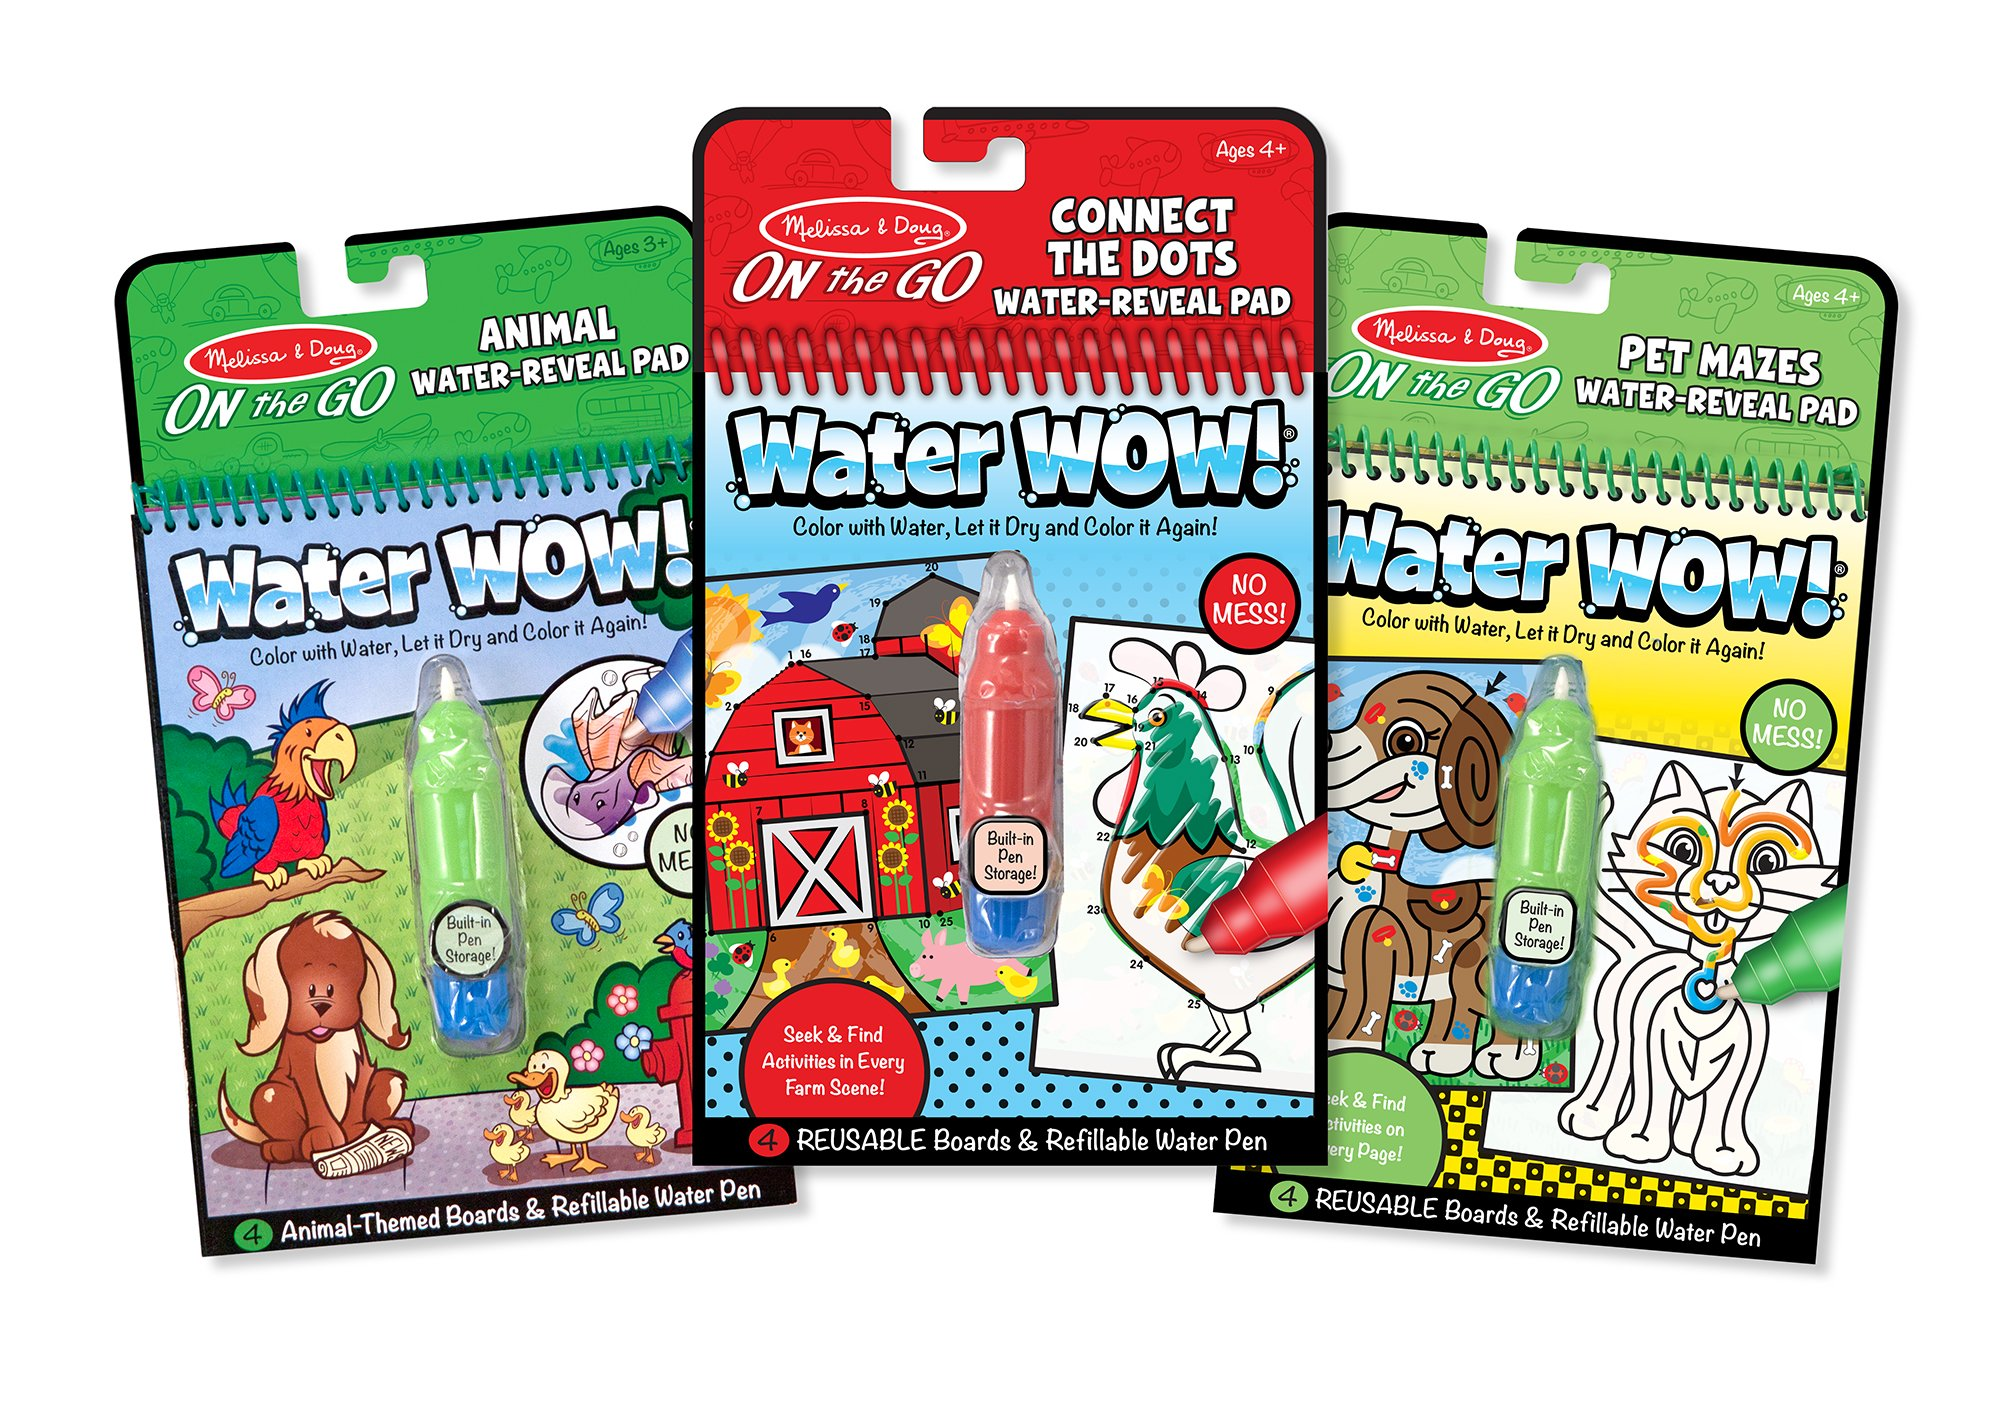 Melissa & Doug On the Go Water Wow! Activity Pad 3-Pack, Animals, Farm, Pet Mazes (Reusable Water Reveal Coloring Books) by Melissa & Doug